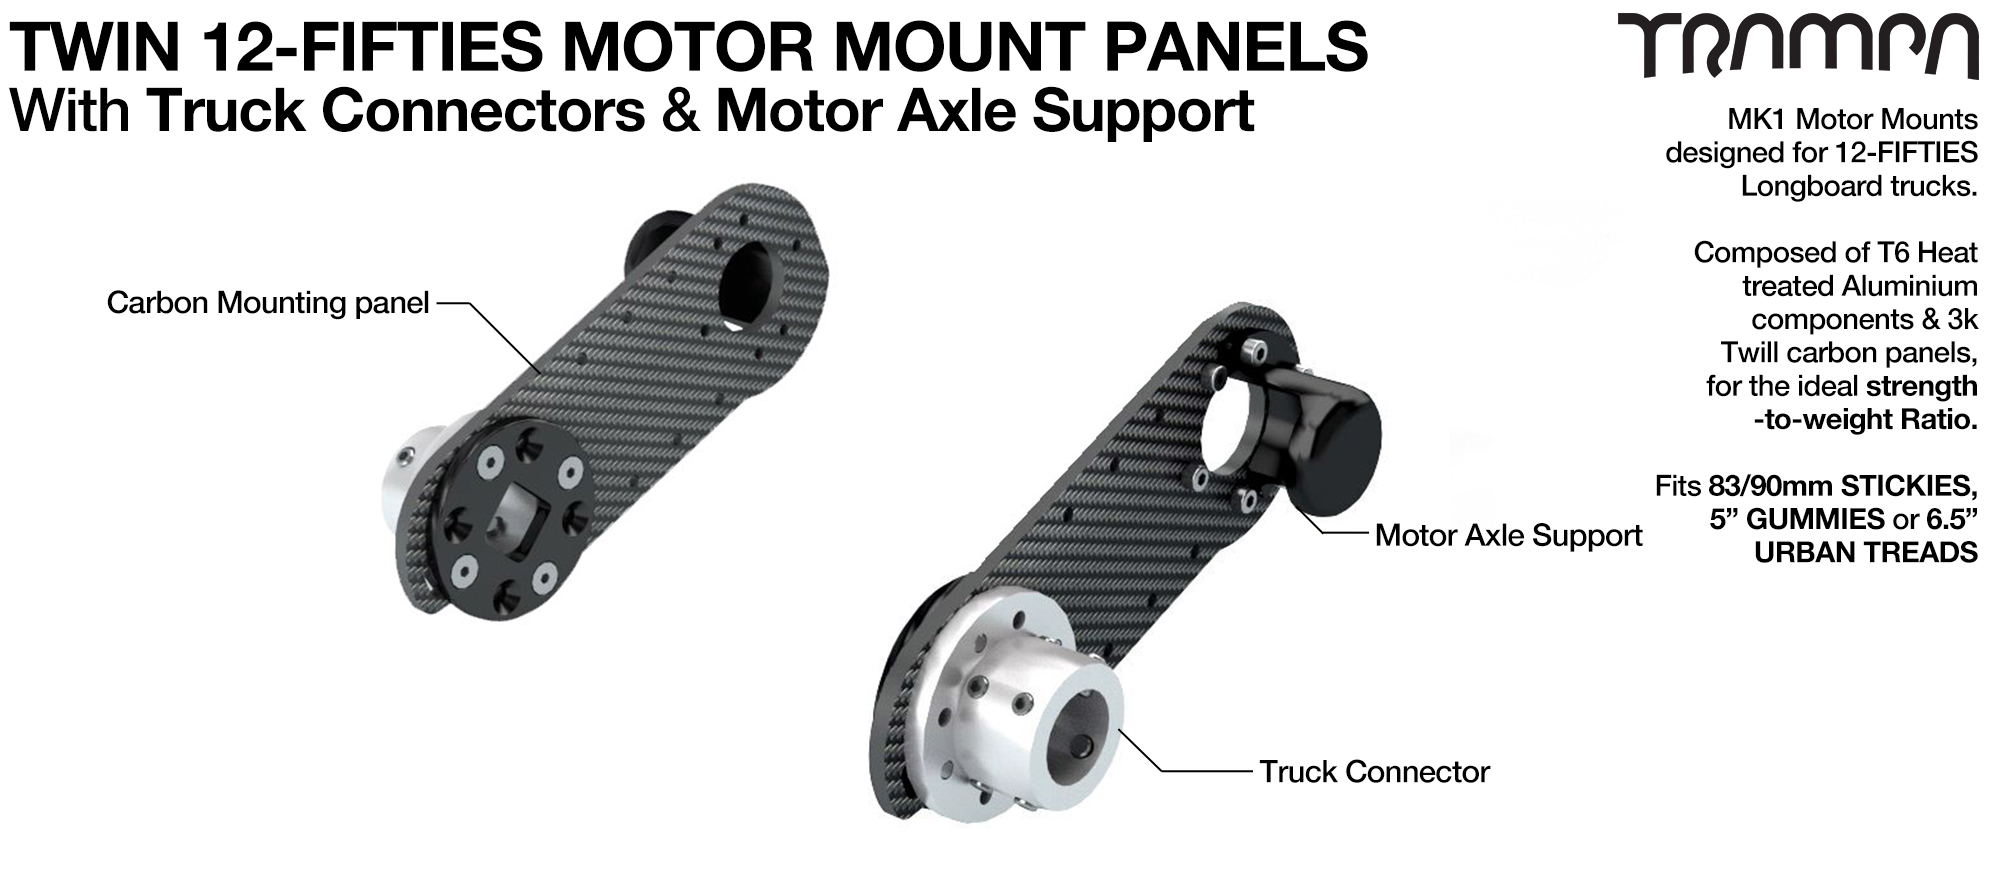 Original 12Fifties Truck Motor Mount Connector & Carbon Panel with Motor Axle support - TWIN